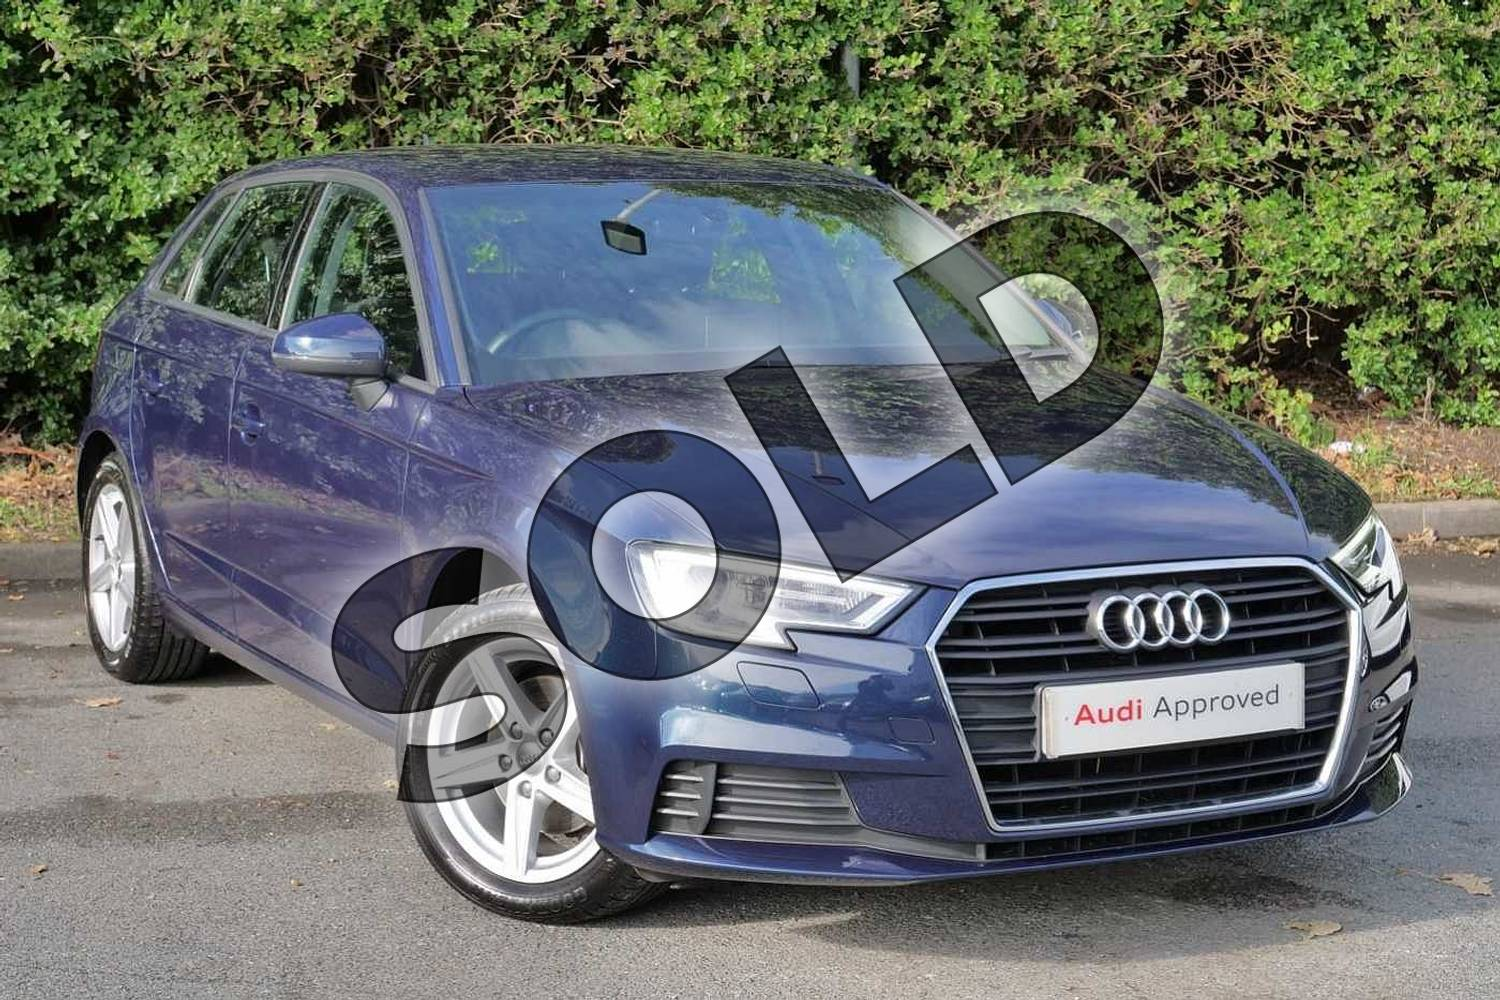 2018 Audi A3 Sportback 35 TFSI SE Technik 5dr in Cosmos Blue Metallic at Worcester Audi